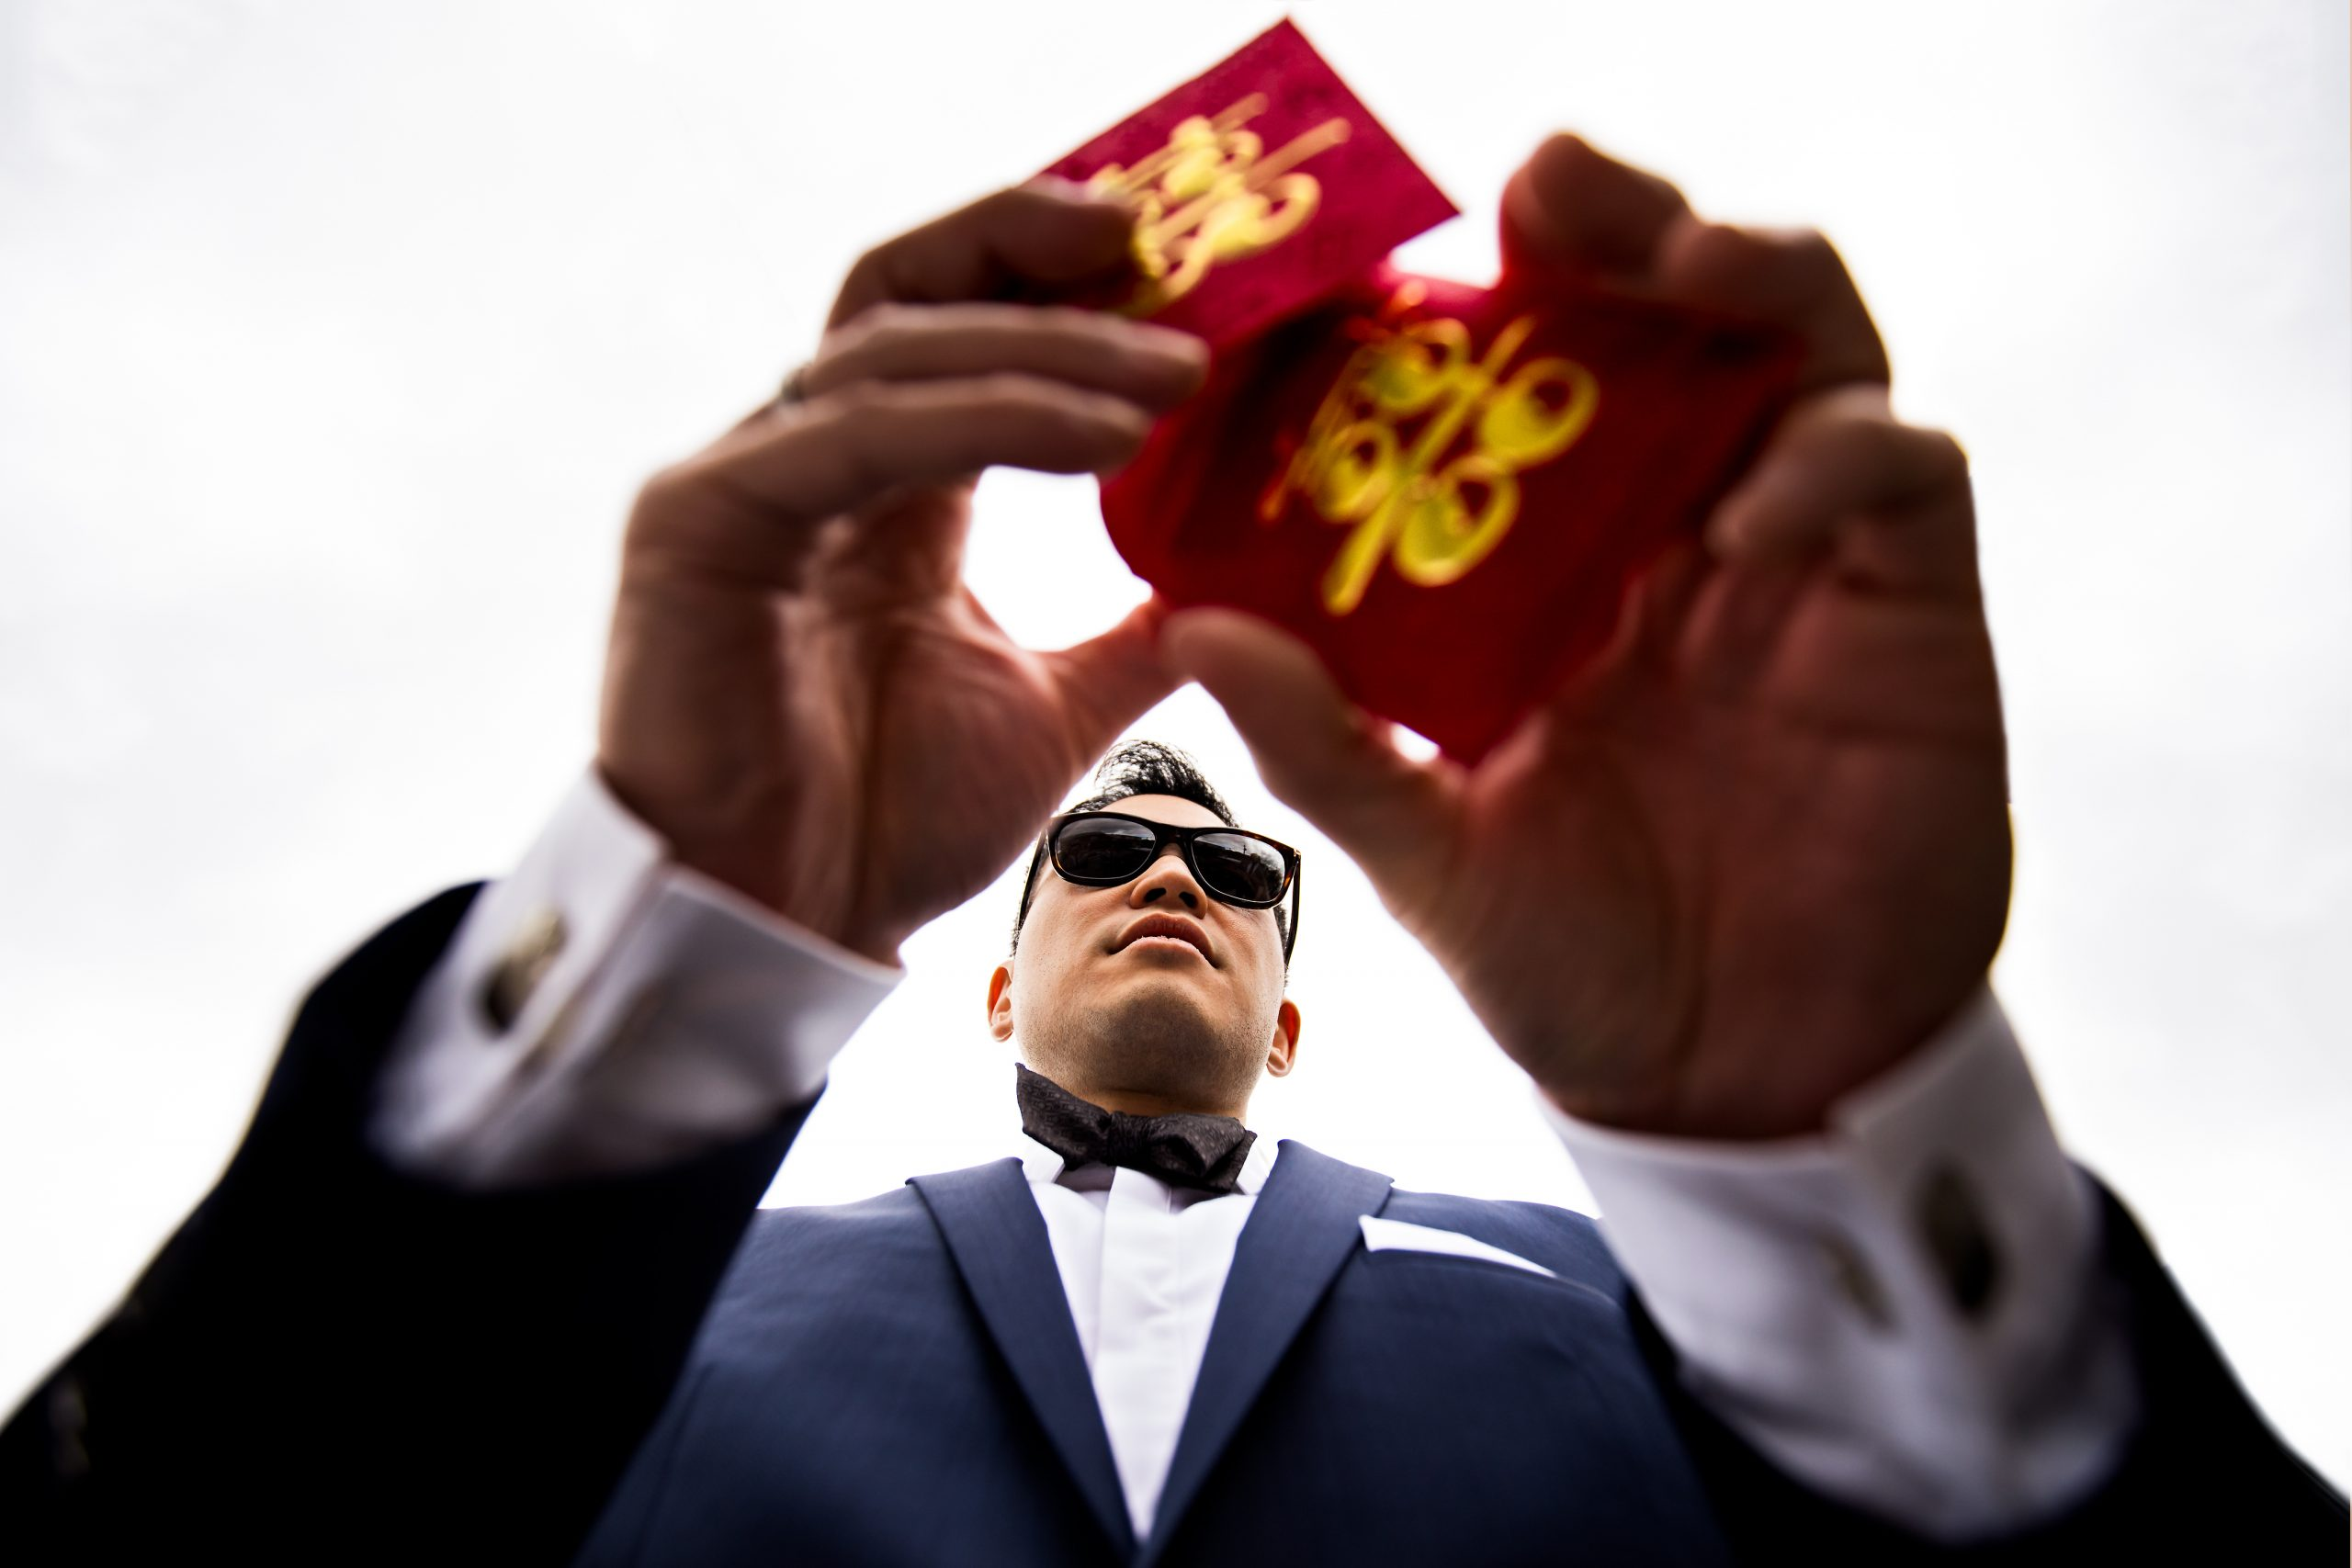 Man in sunglasses and suit holding red envelopes